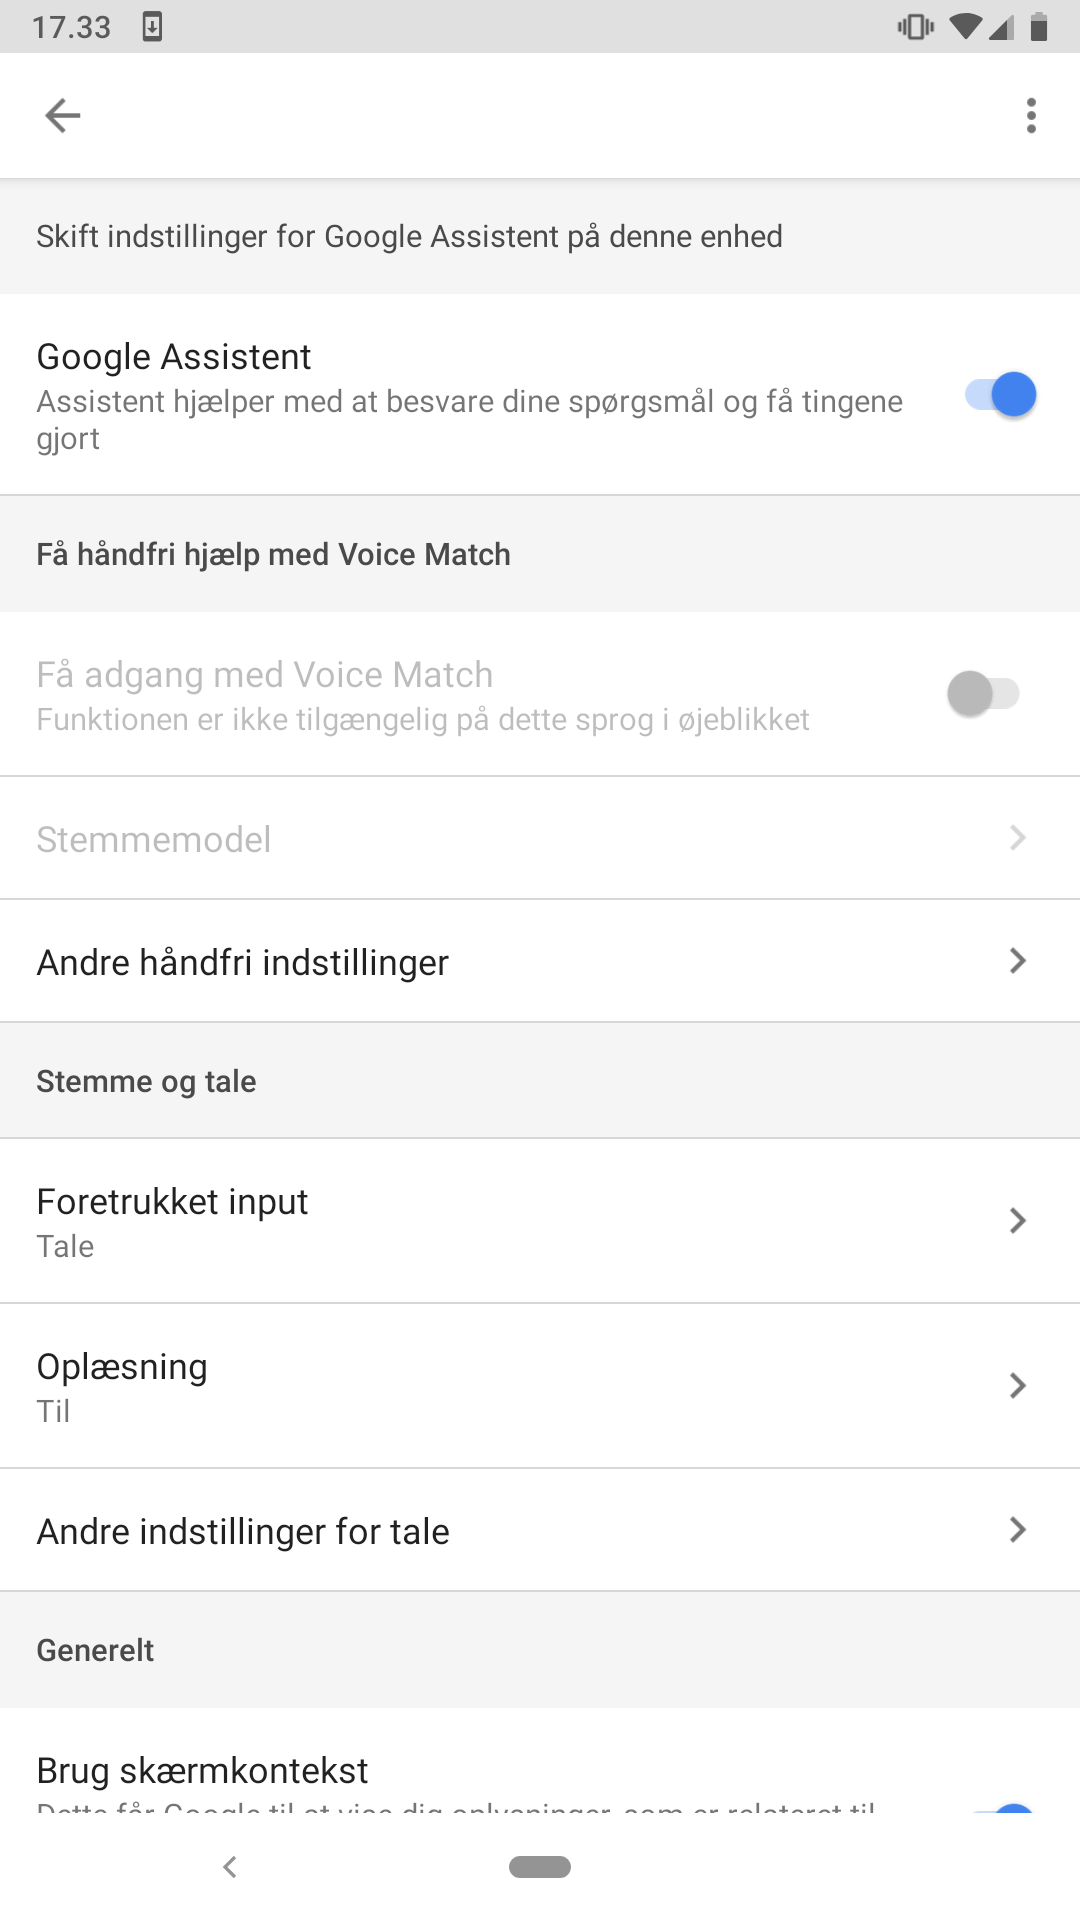 Voice match is greyed out - Google Assistant Help